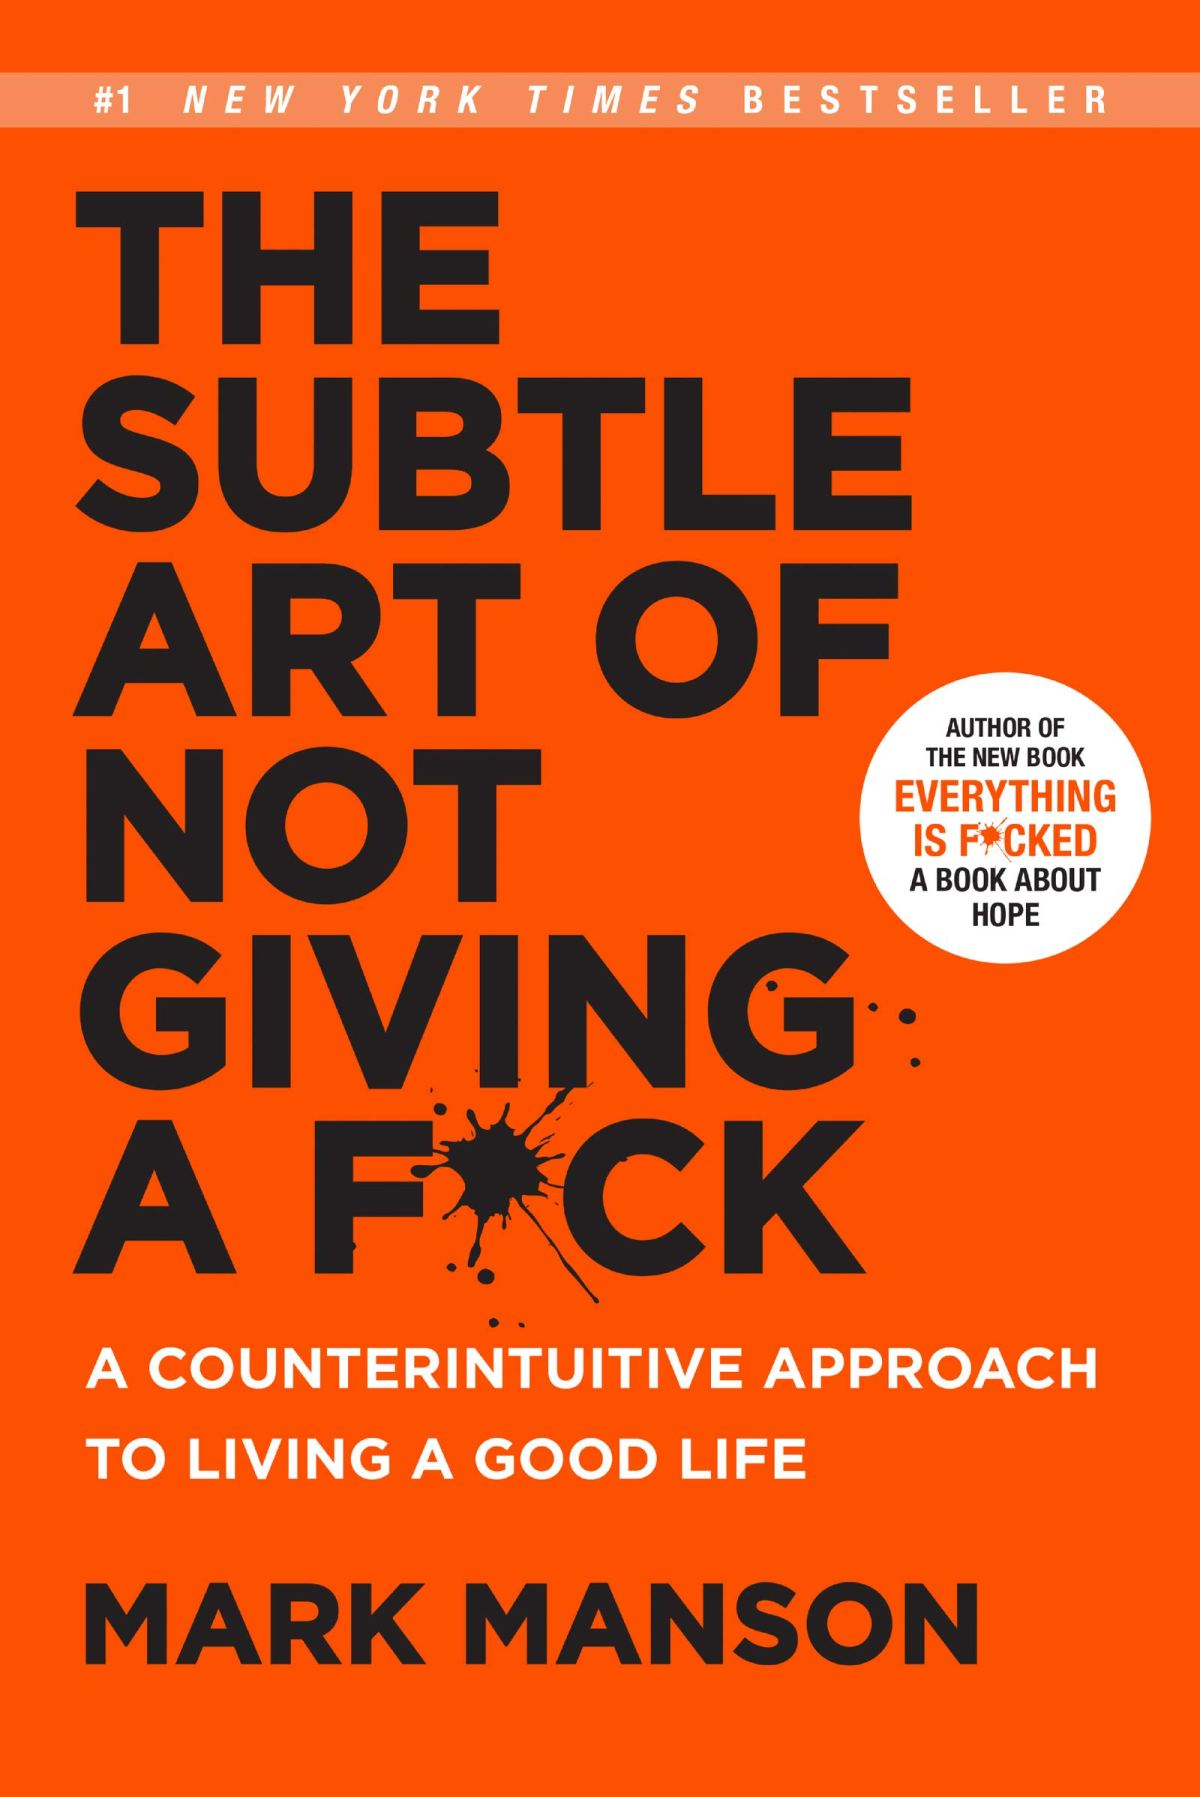 The Subtle Art of Not Giving a F*ck: A Counterintuitive Approach to Living a  Good Life | Amazon.com.br